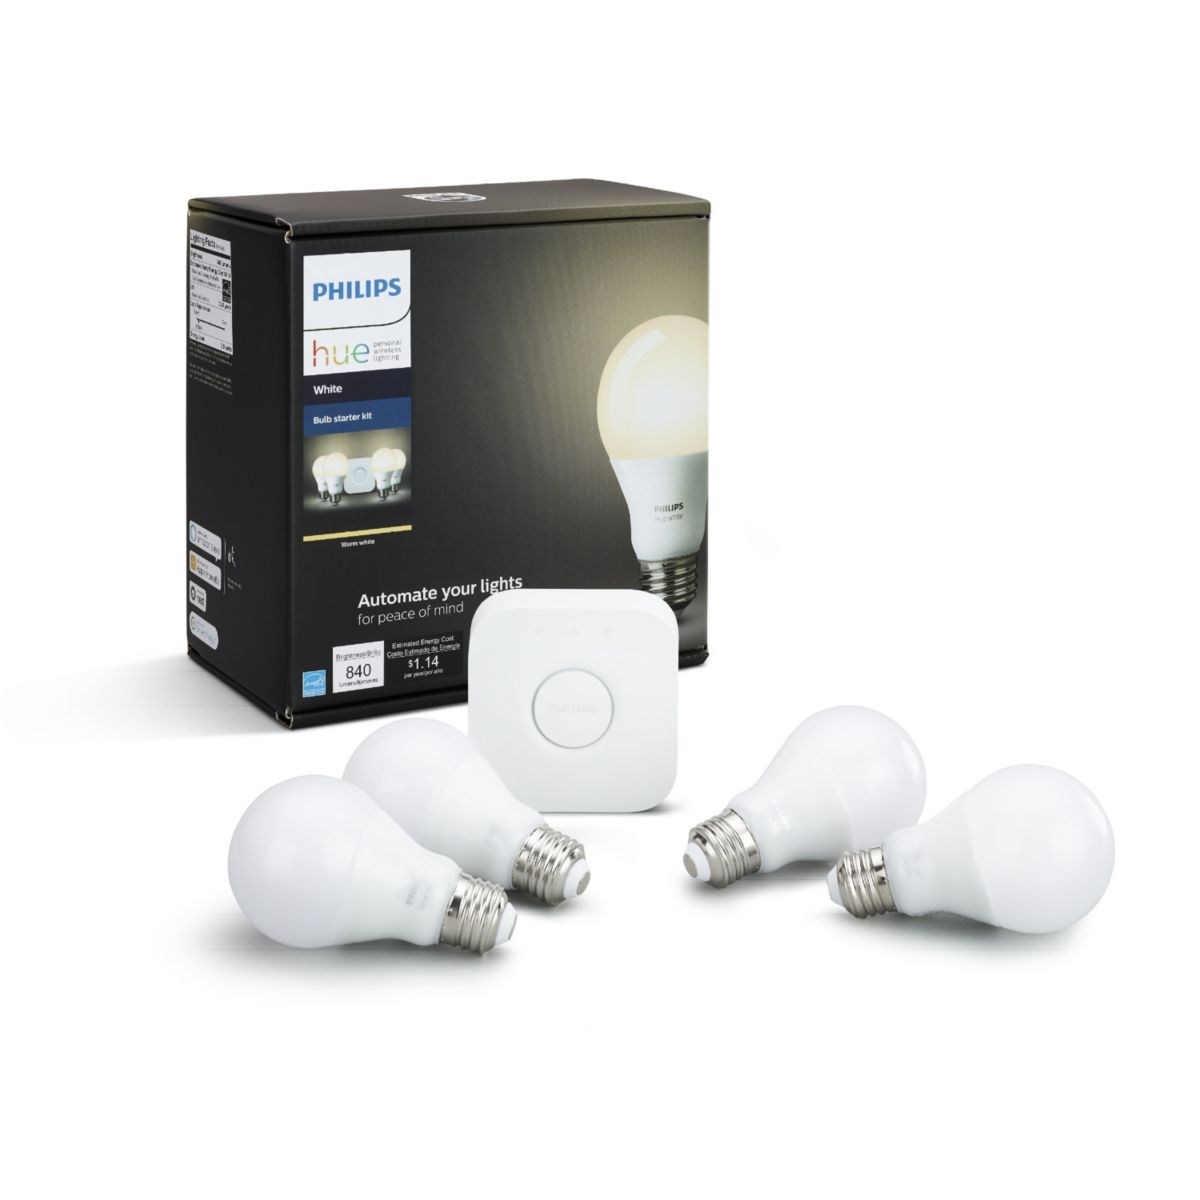 Philips Lighting Hue Products Meethue Philips Lighting